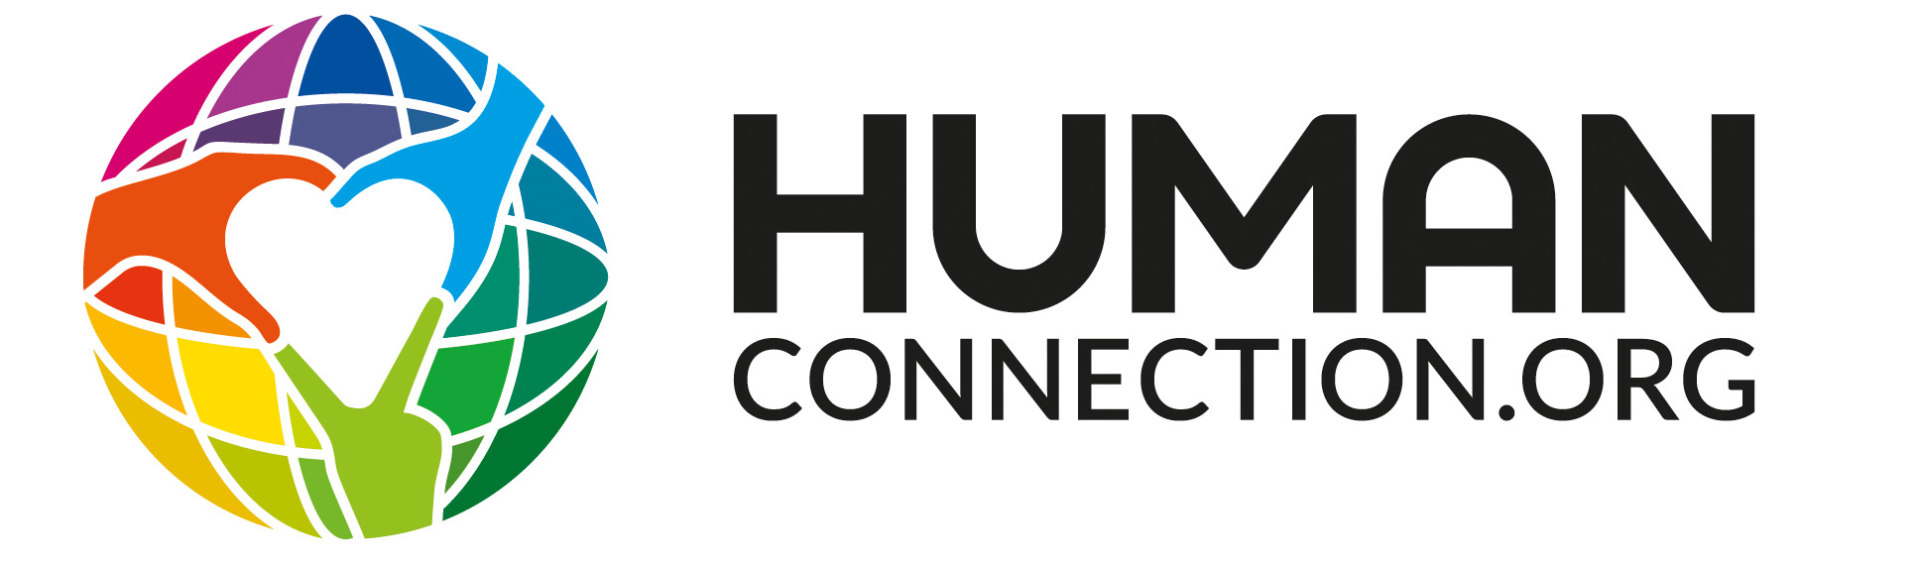 Human Connection Logo 2018 - QUERFORMAT